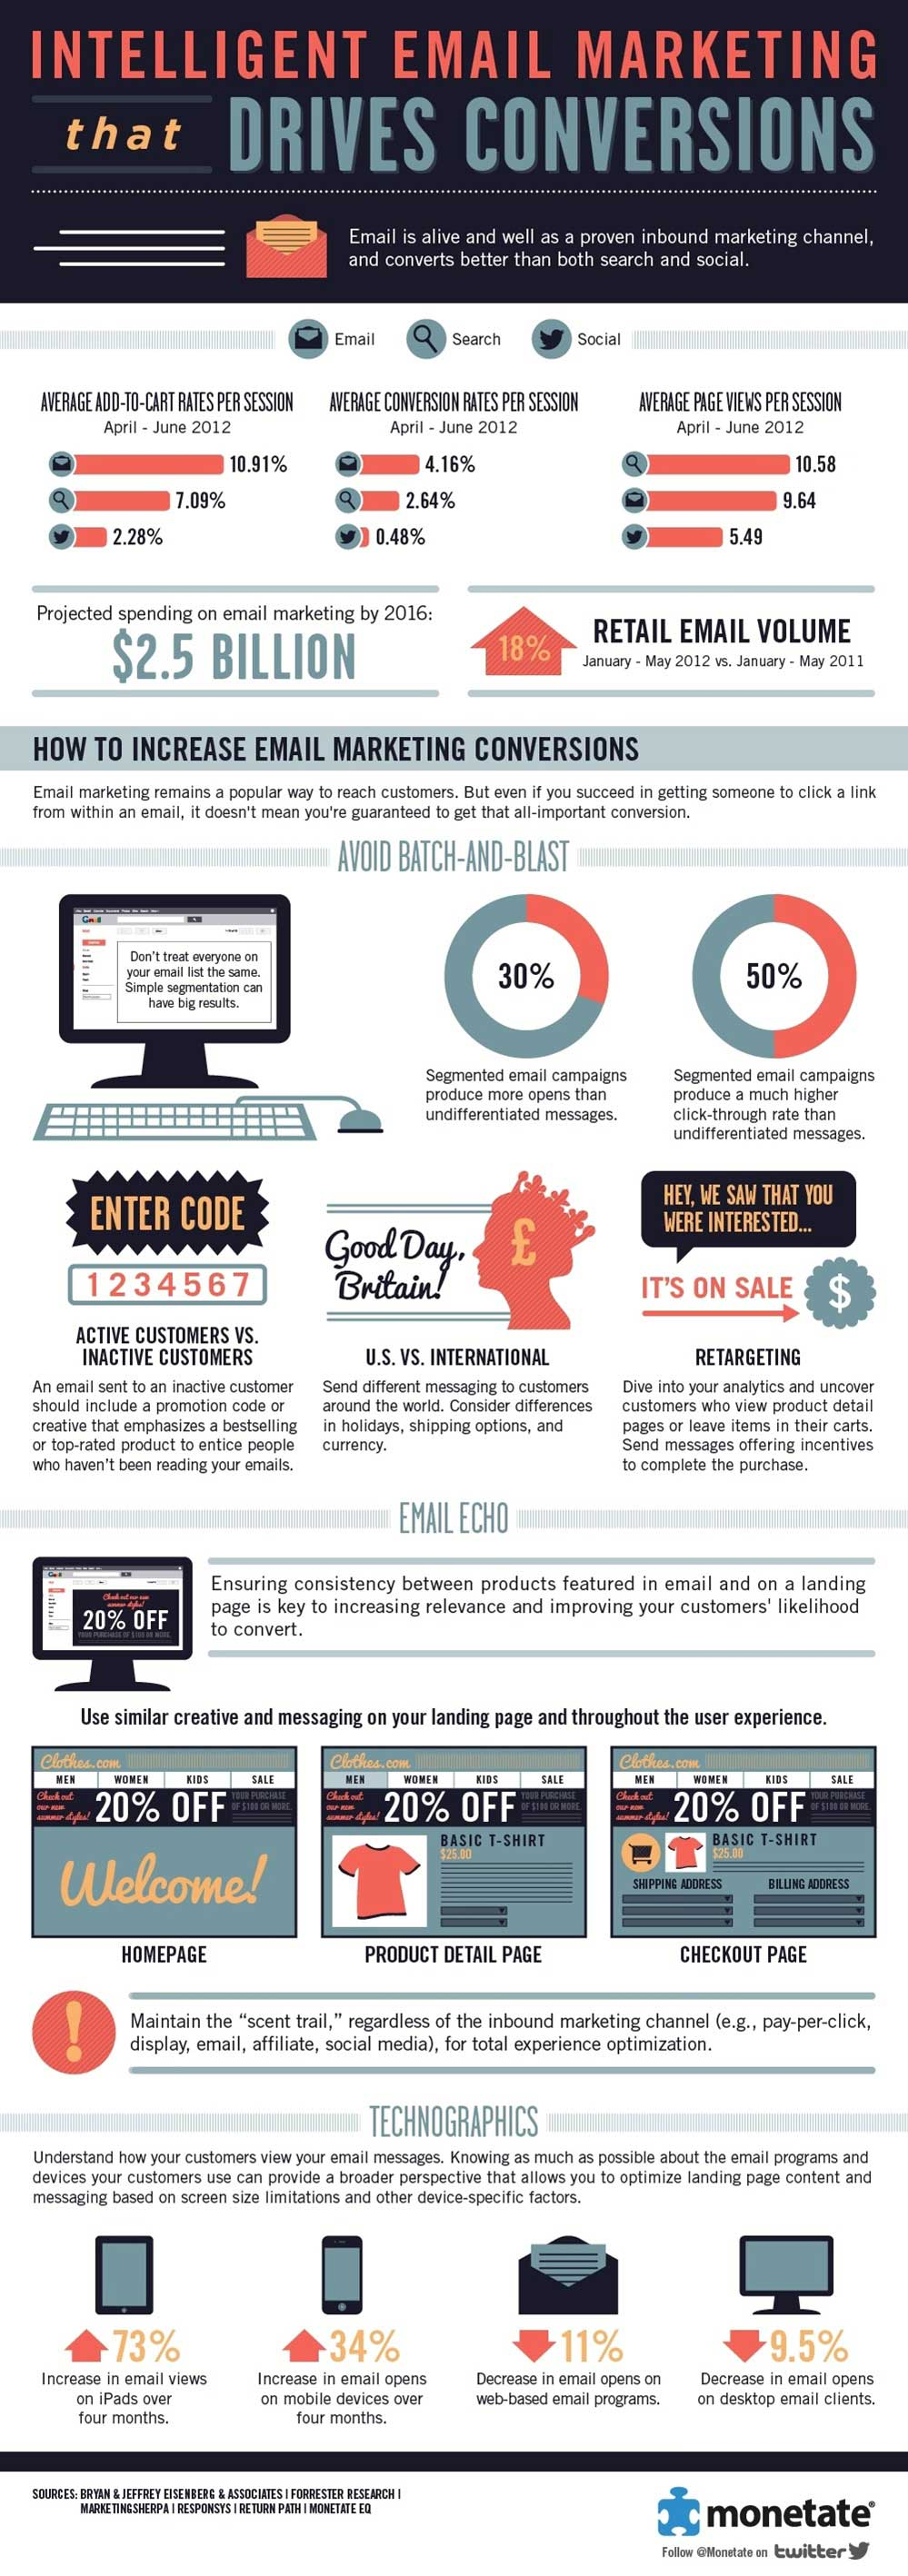 Intelligent Email Marketing that Drives Conversions [Infographic]